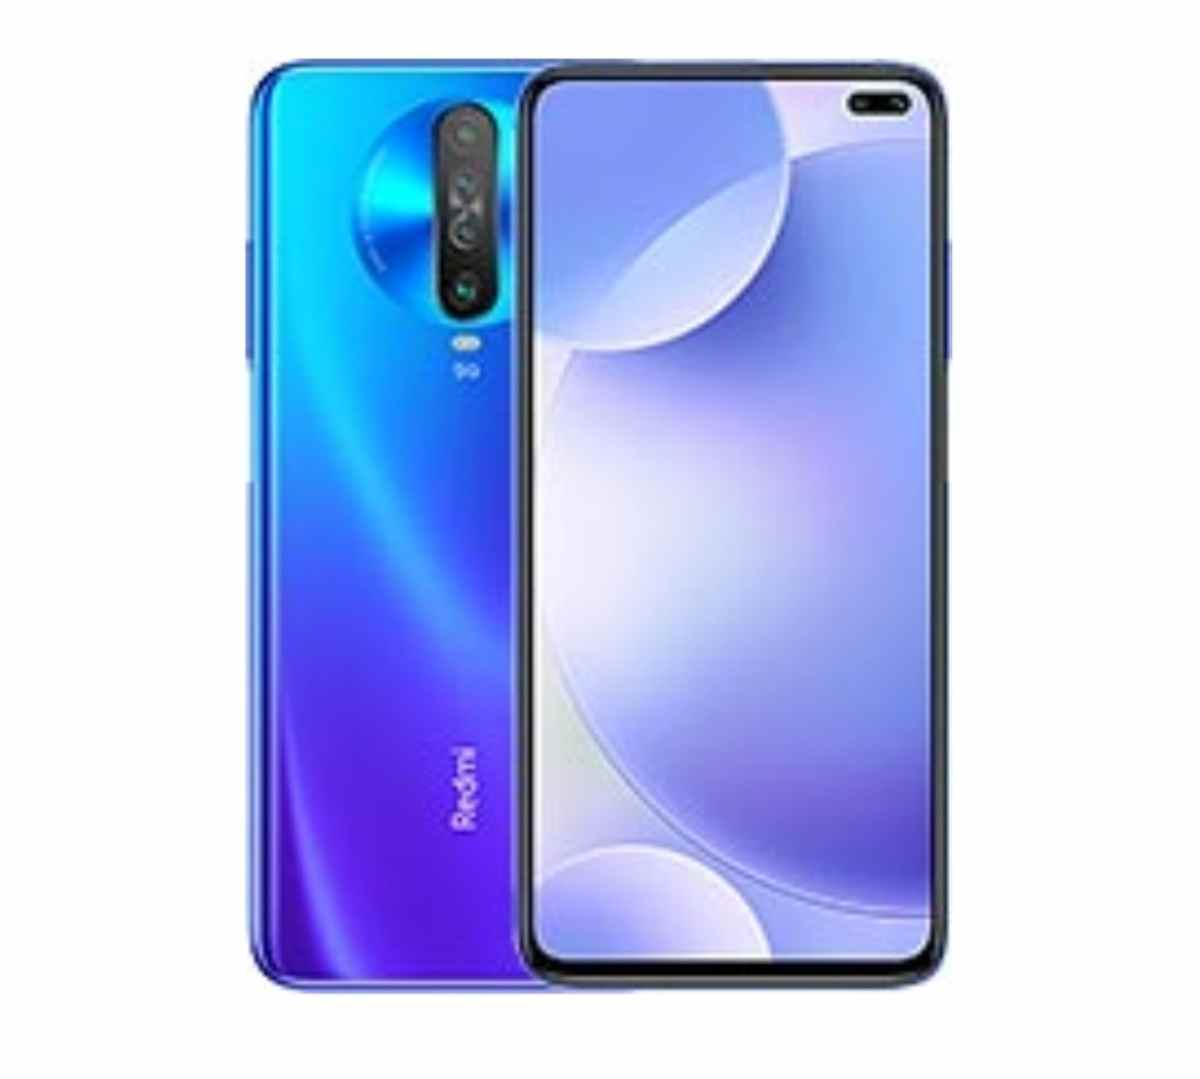 Xiaomi Redmi K30 5G, Redmi K30 5G, Xiaomi Redmi K30 5g price in Nigeria, price of Xiaomi Redmi K30 5G in Nigeria, how much is Xiaomi Rdmi K30 5g in Nigeria, Xiaomi Redmi K30 5G specs and price, Redmi K30 5g price, specs and price of Xiaomi Redmi K30 5g, Xiaomi Redmi Phones price in Nigeria